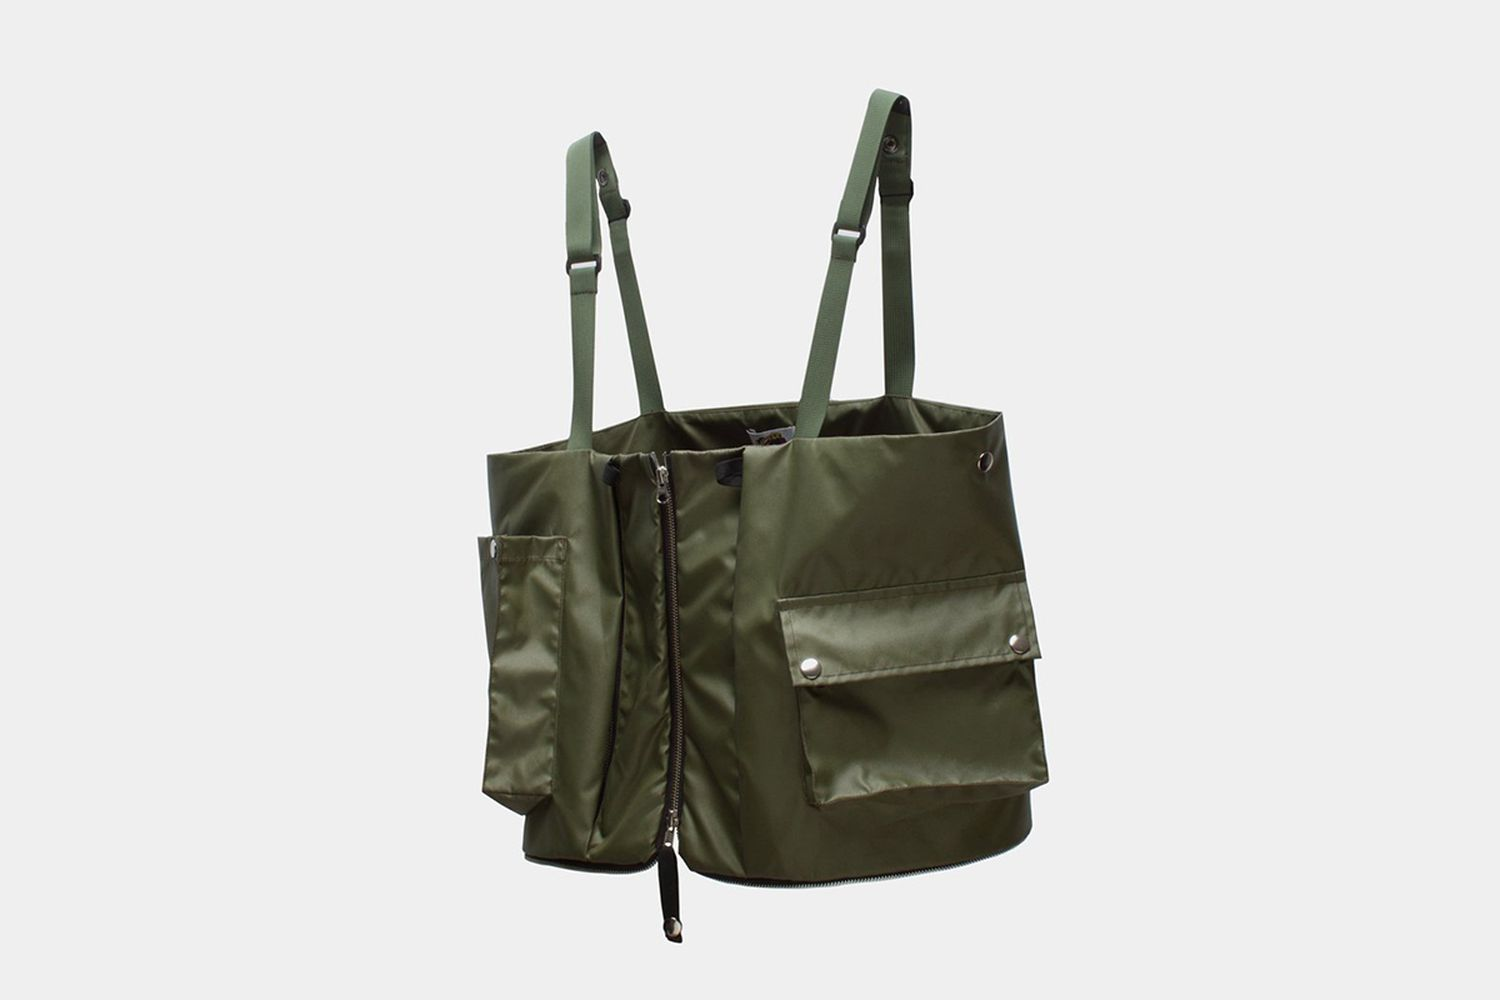 Phase Vest / Tote Bag